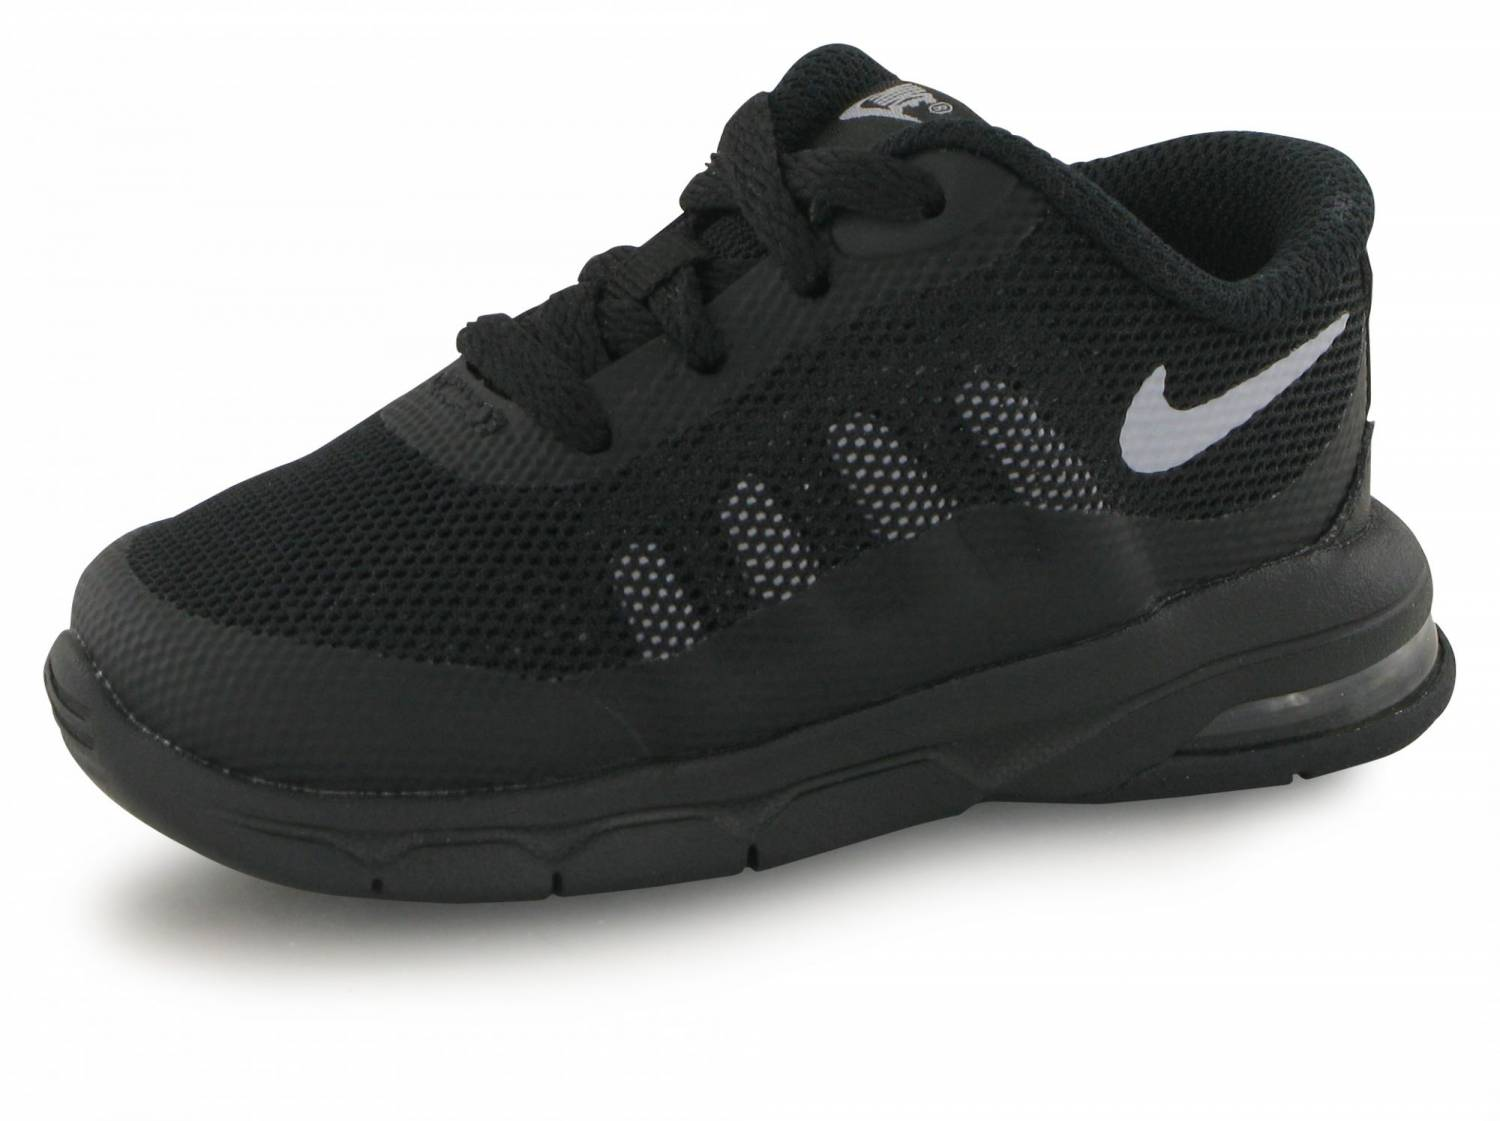 design de qualité 081d8 fb376 Nike Air Max Invigor Bebe Noir / Gris